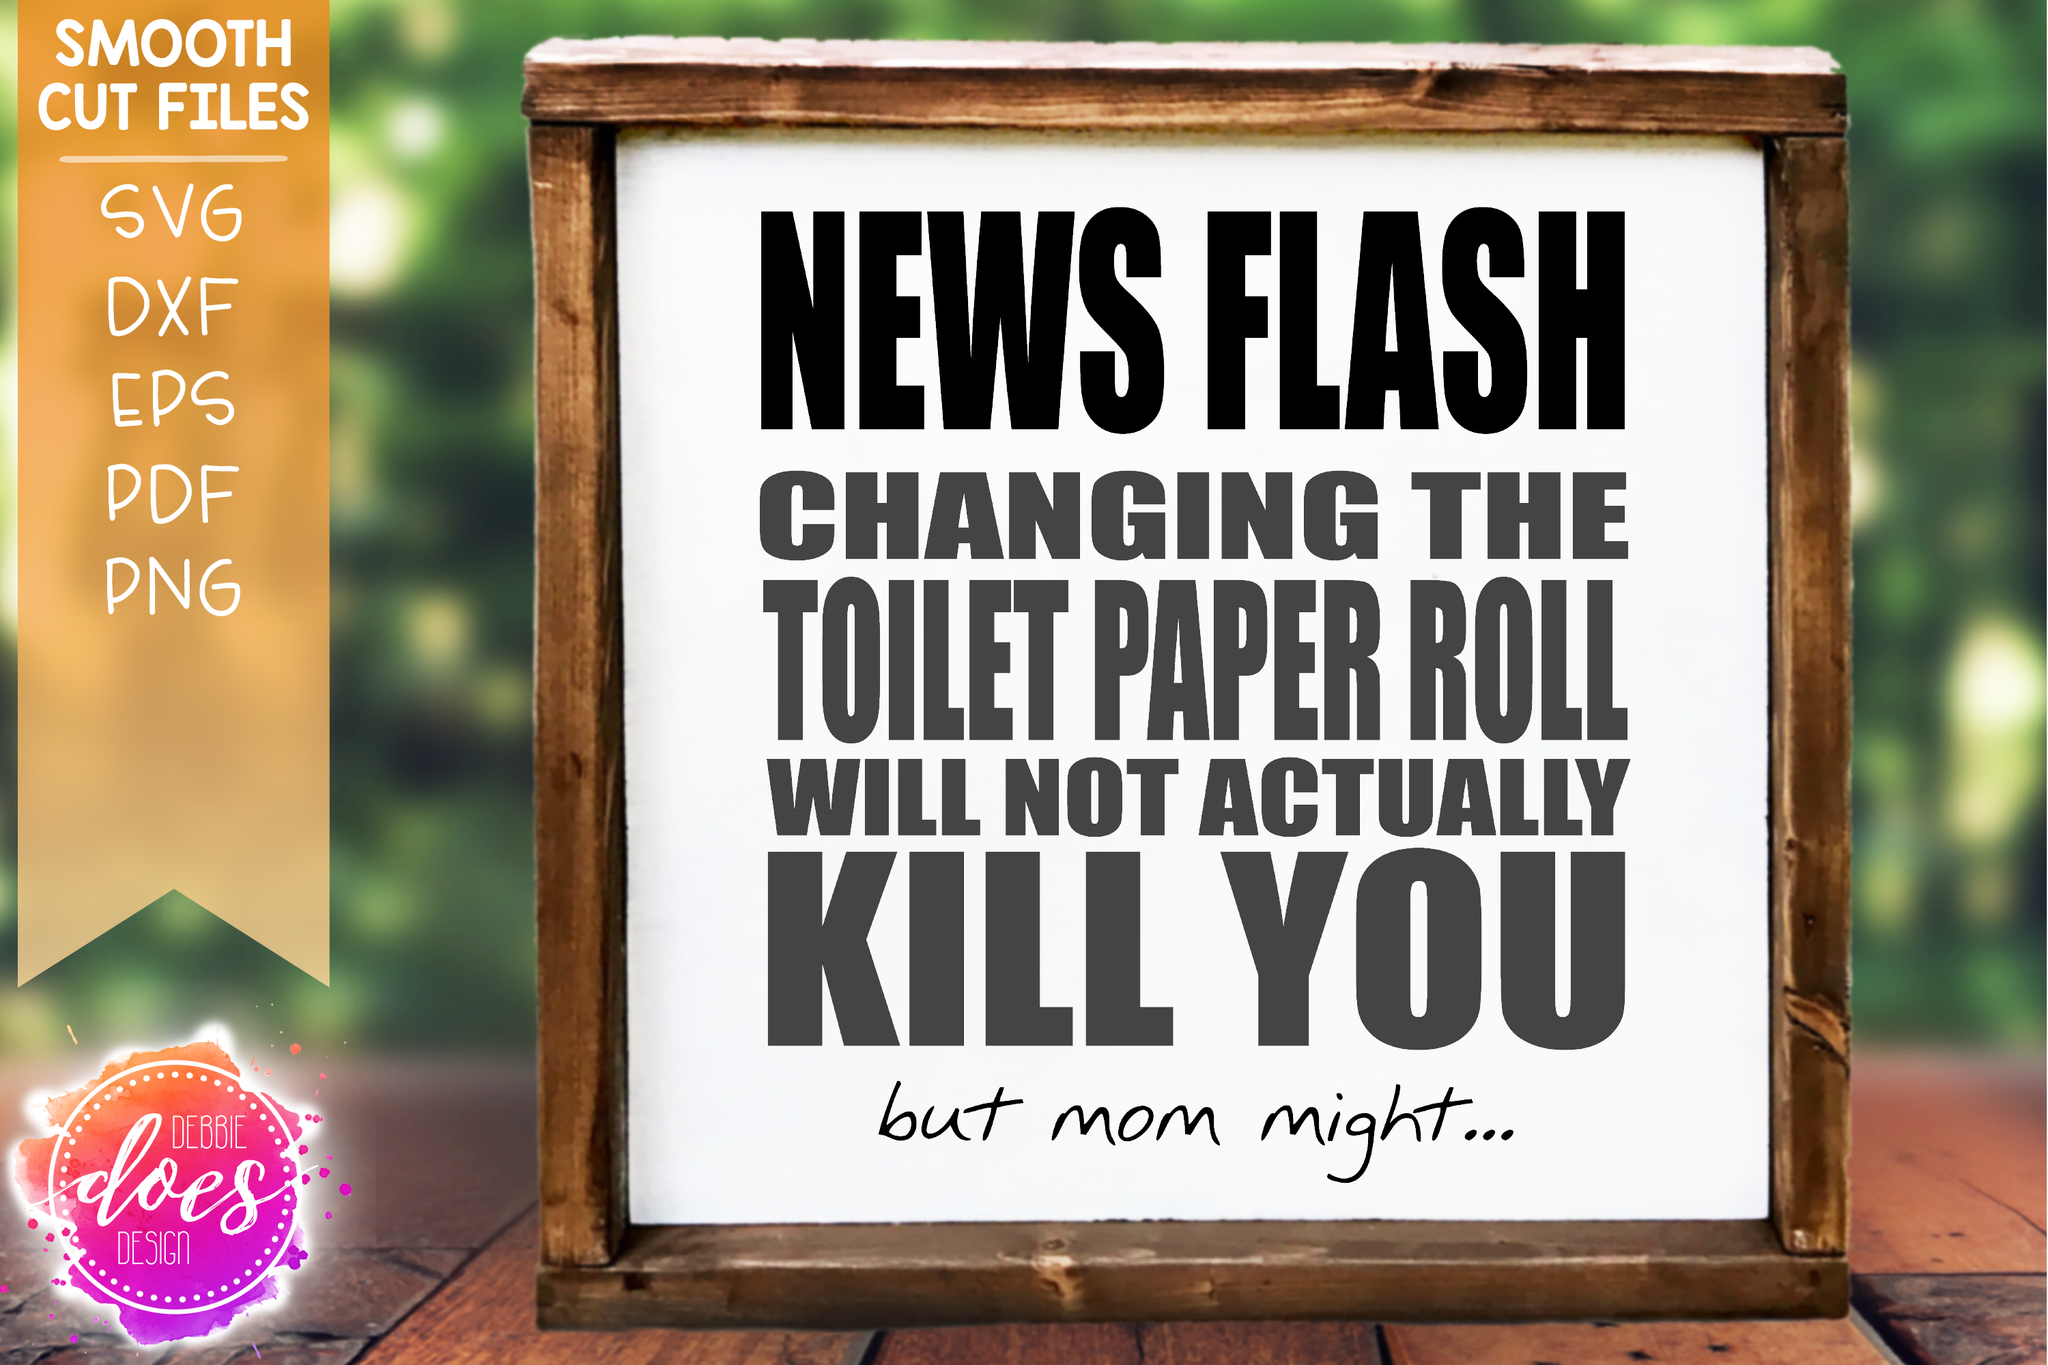 News Flash, Changing the Toilet Paper Will Not Kill You - SVG File